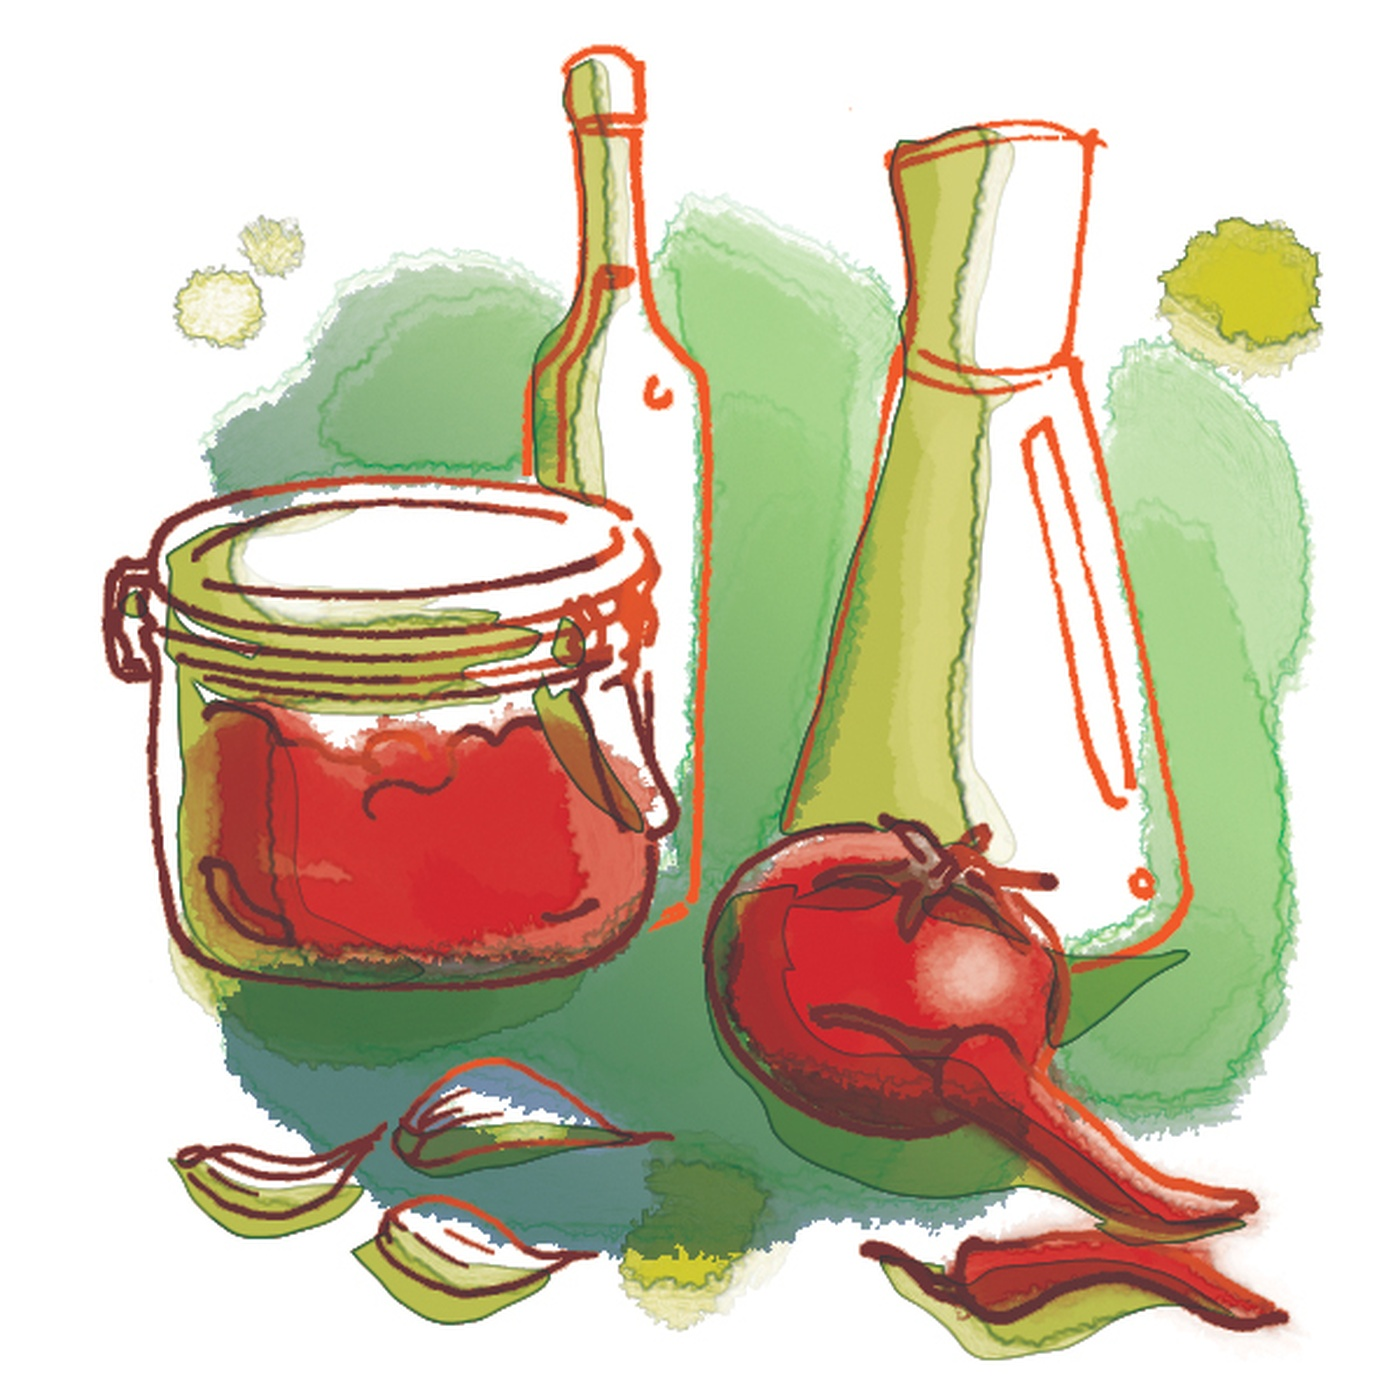 Béatrice Favereau - sauces